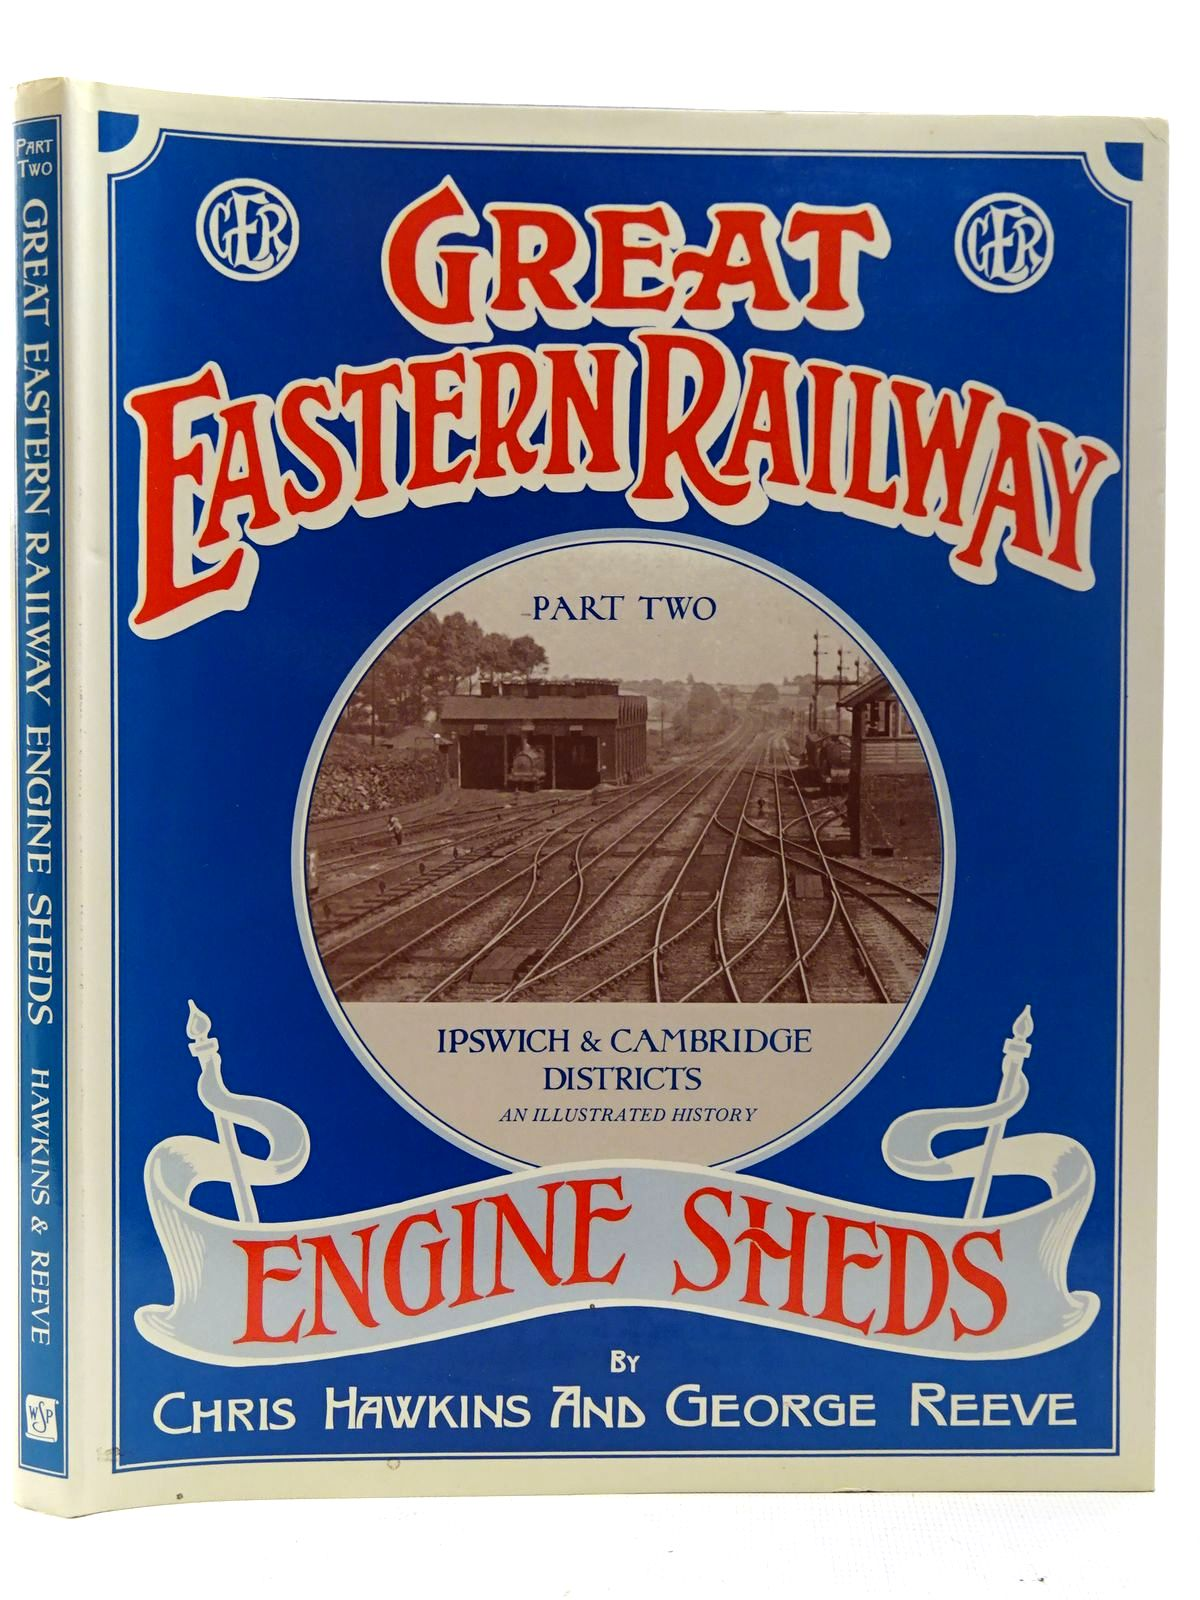 Photo of GREAT EASTERN RAILWAY ENGINE SHEDS PART TWO: IPSWICH AND CAMBRIDGE LOCOMOTIVE DISTRICTS written by Hawkins, Chris